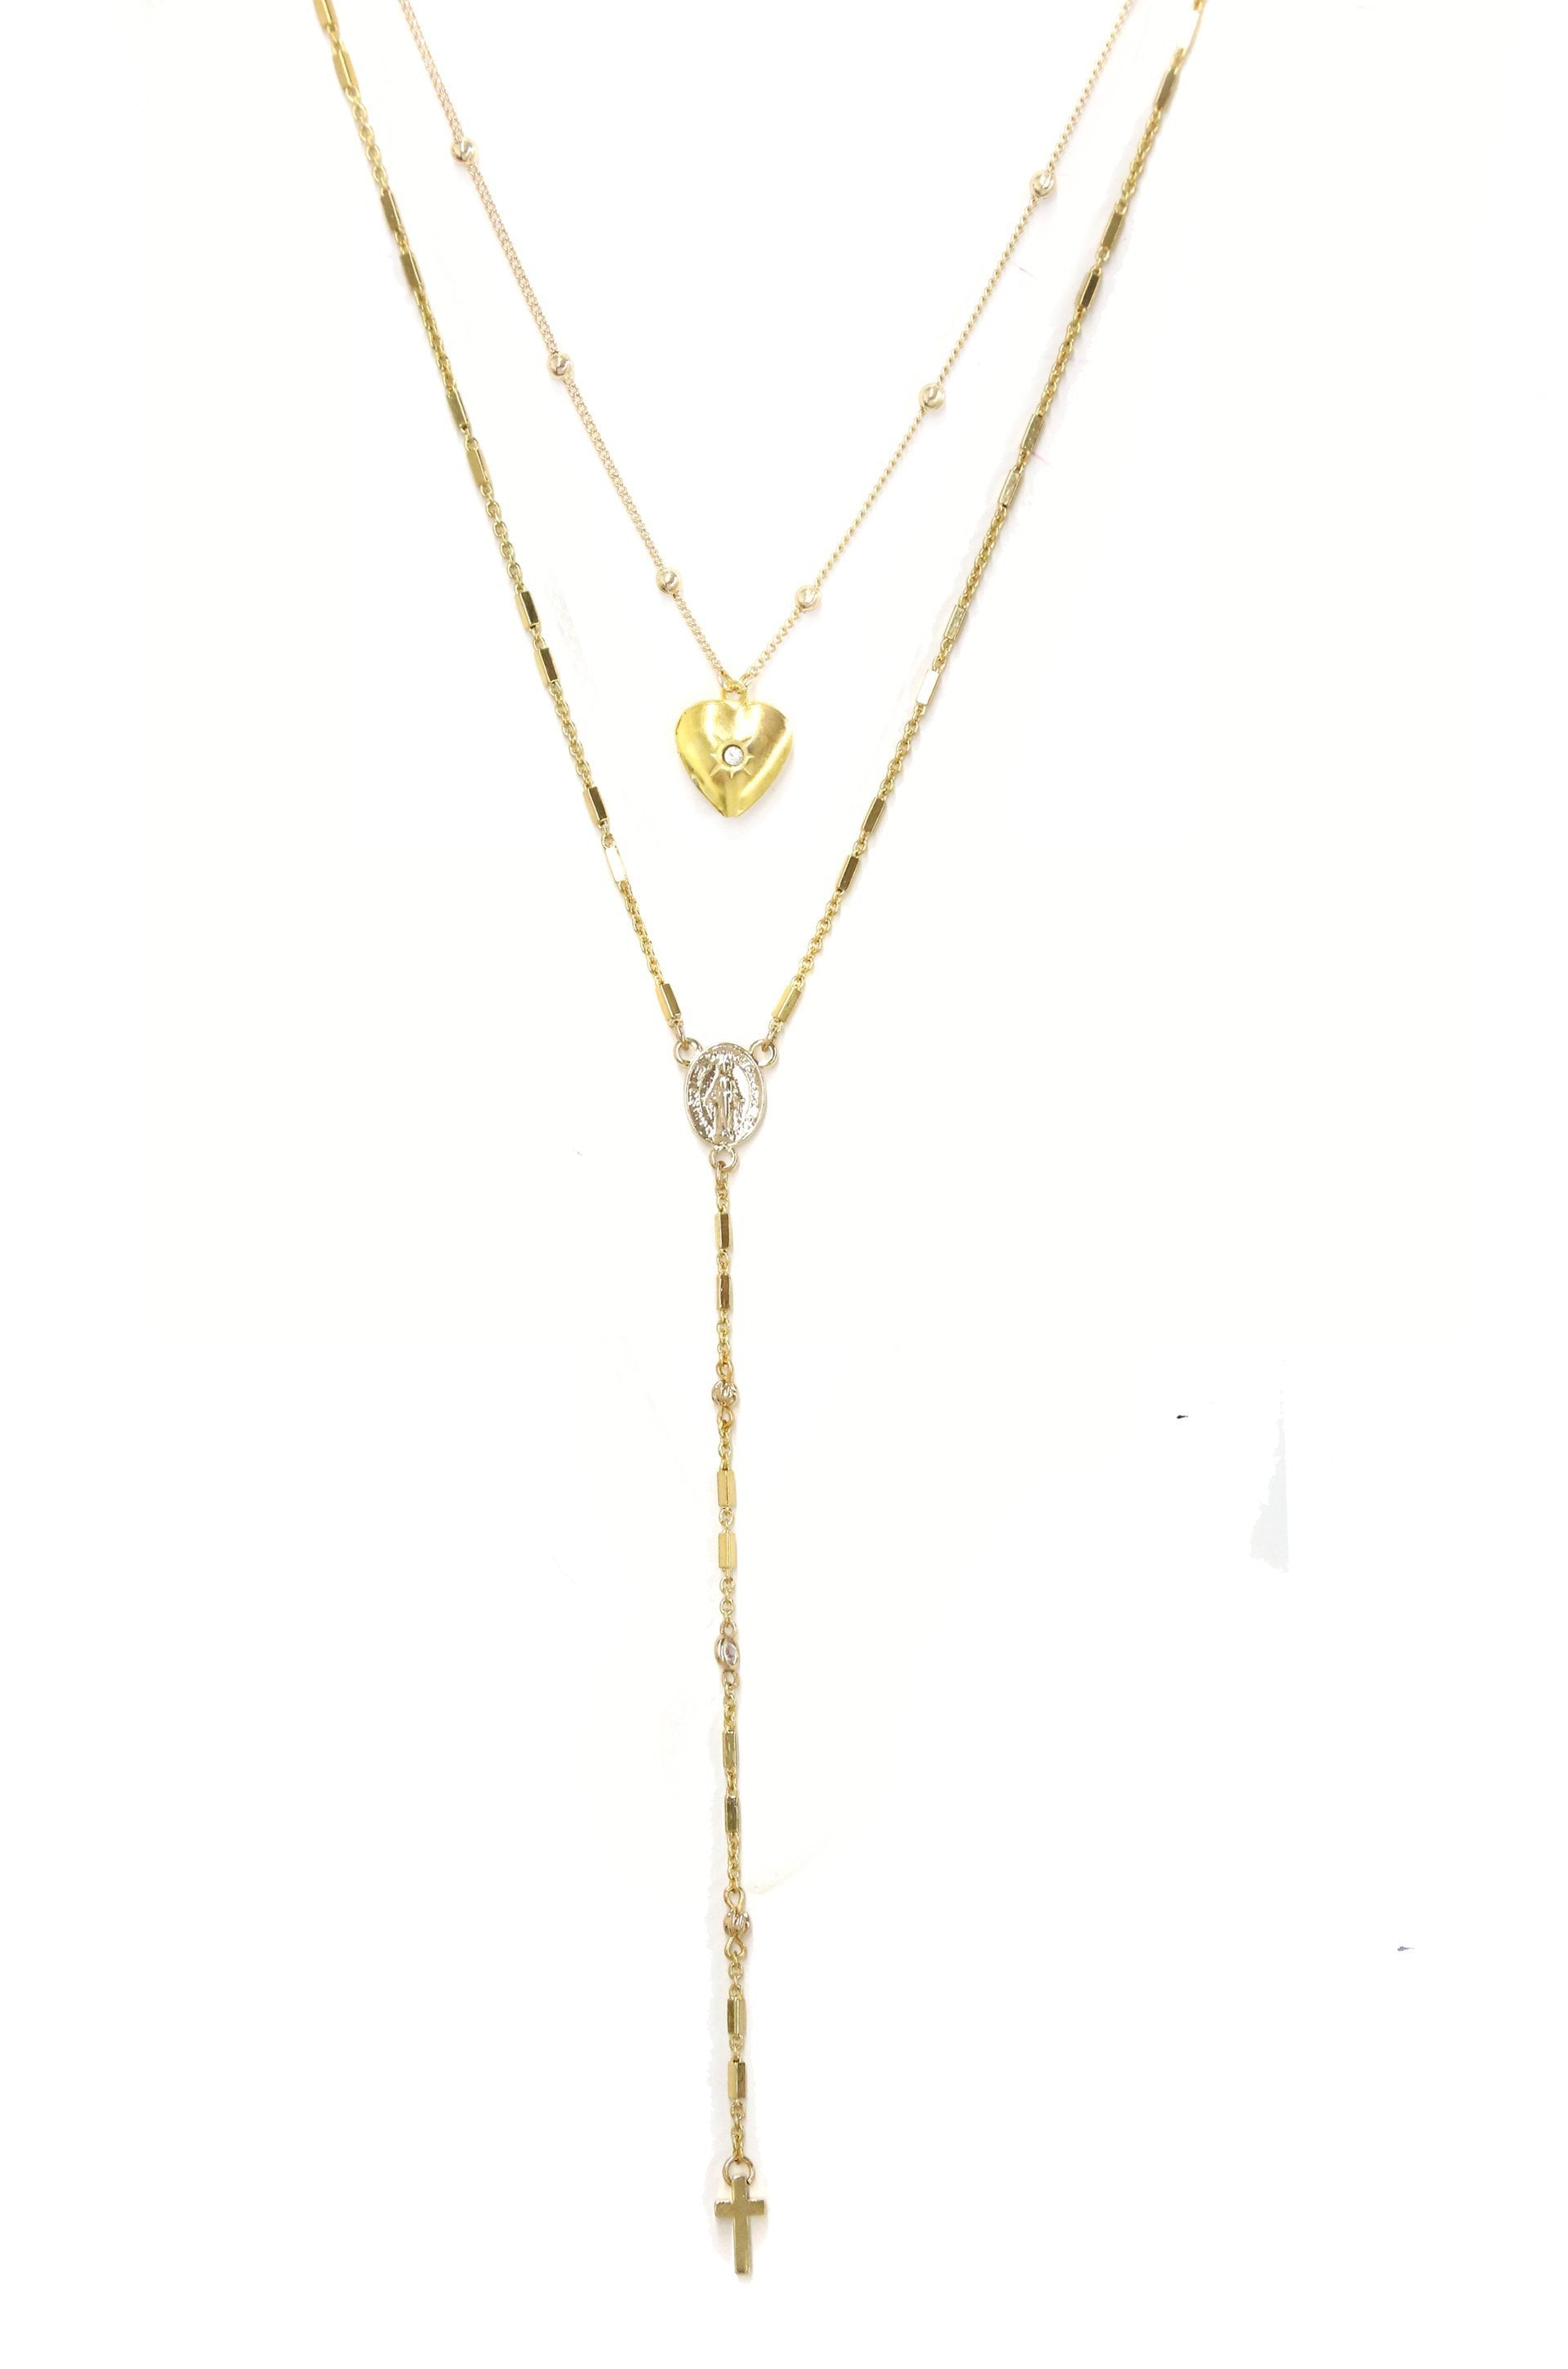 2 pc 'Precious Keepsake' 18kt Gold Plated Necklace Set